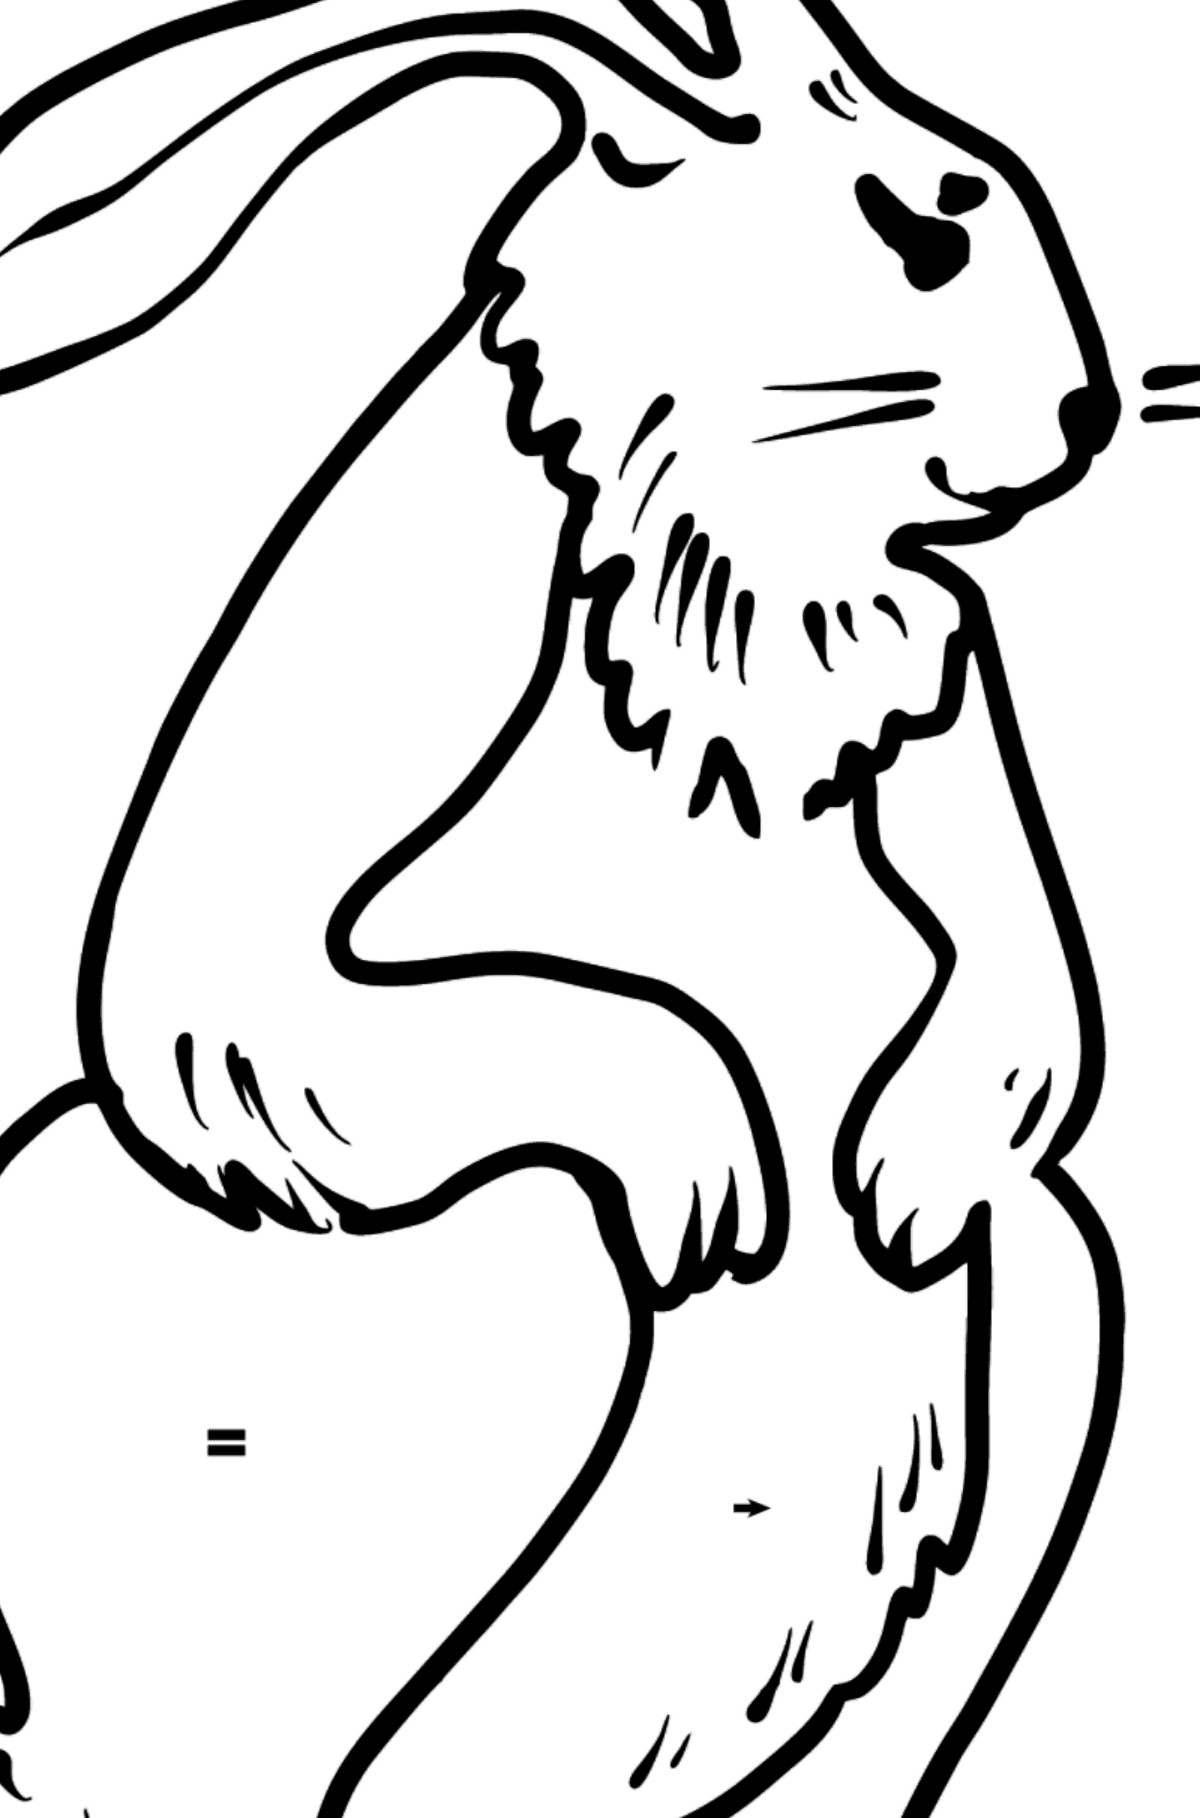 Rabbit coloring page - Coloring by Symbols for Kids